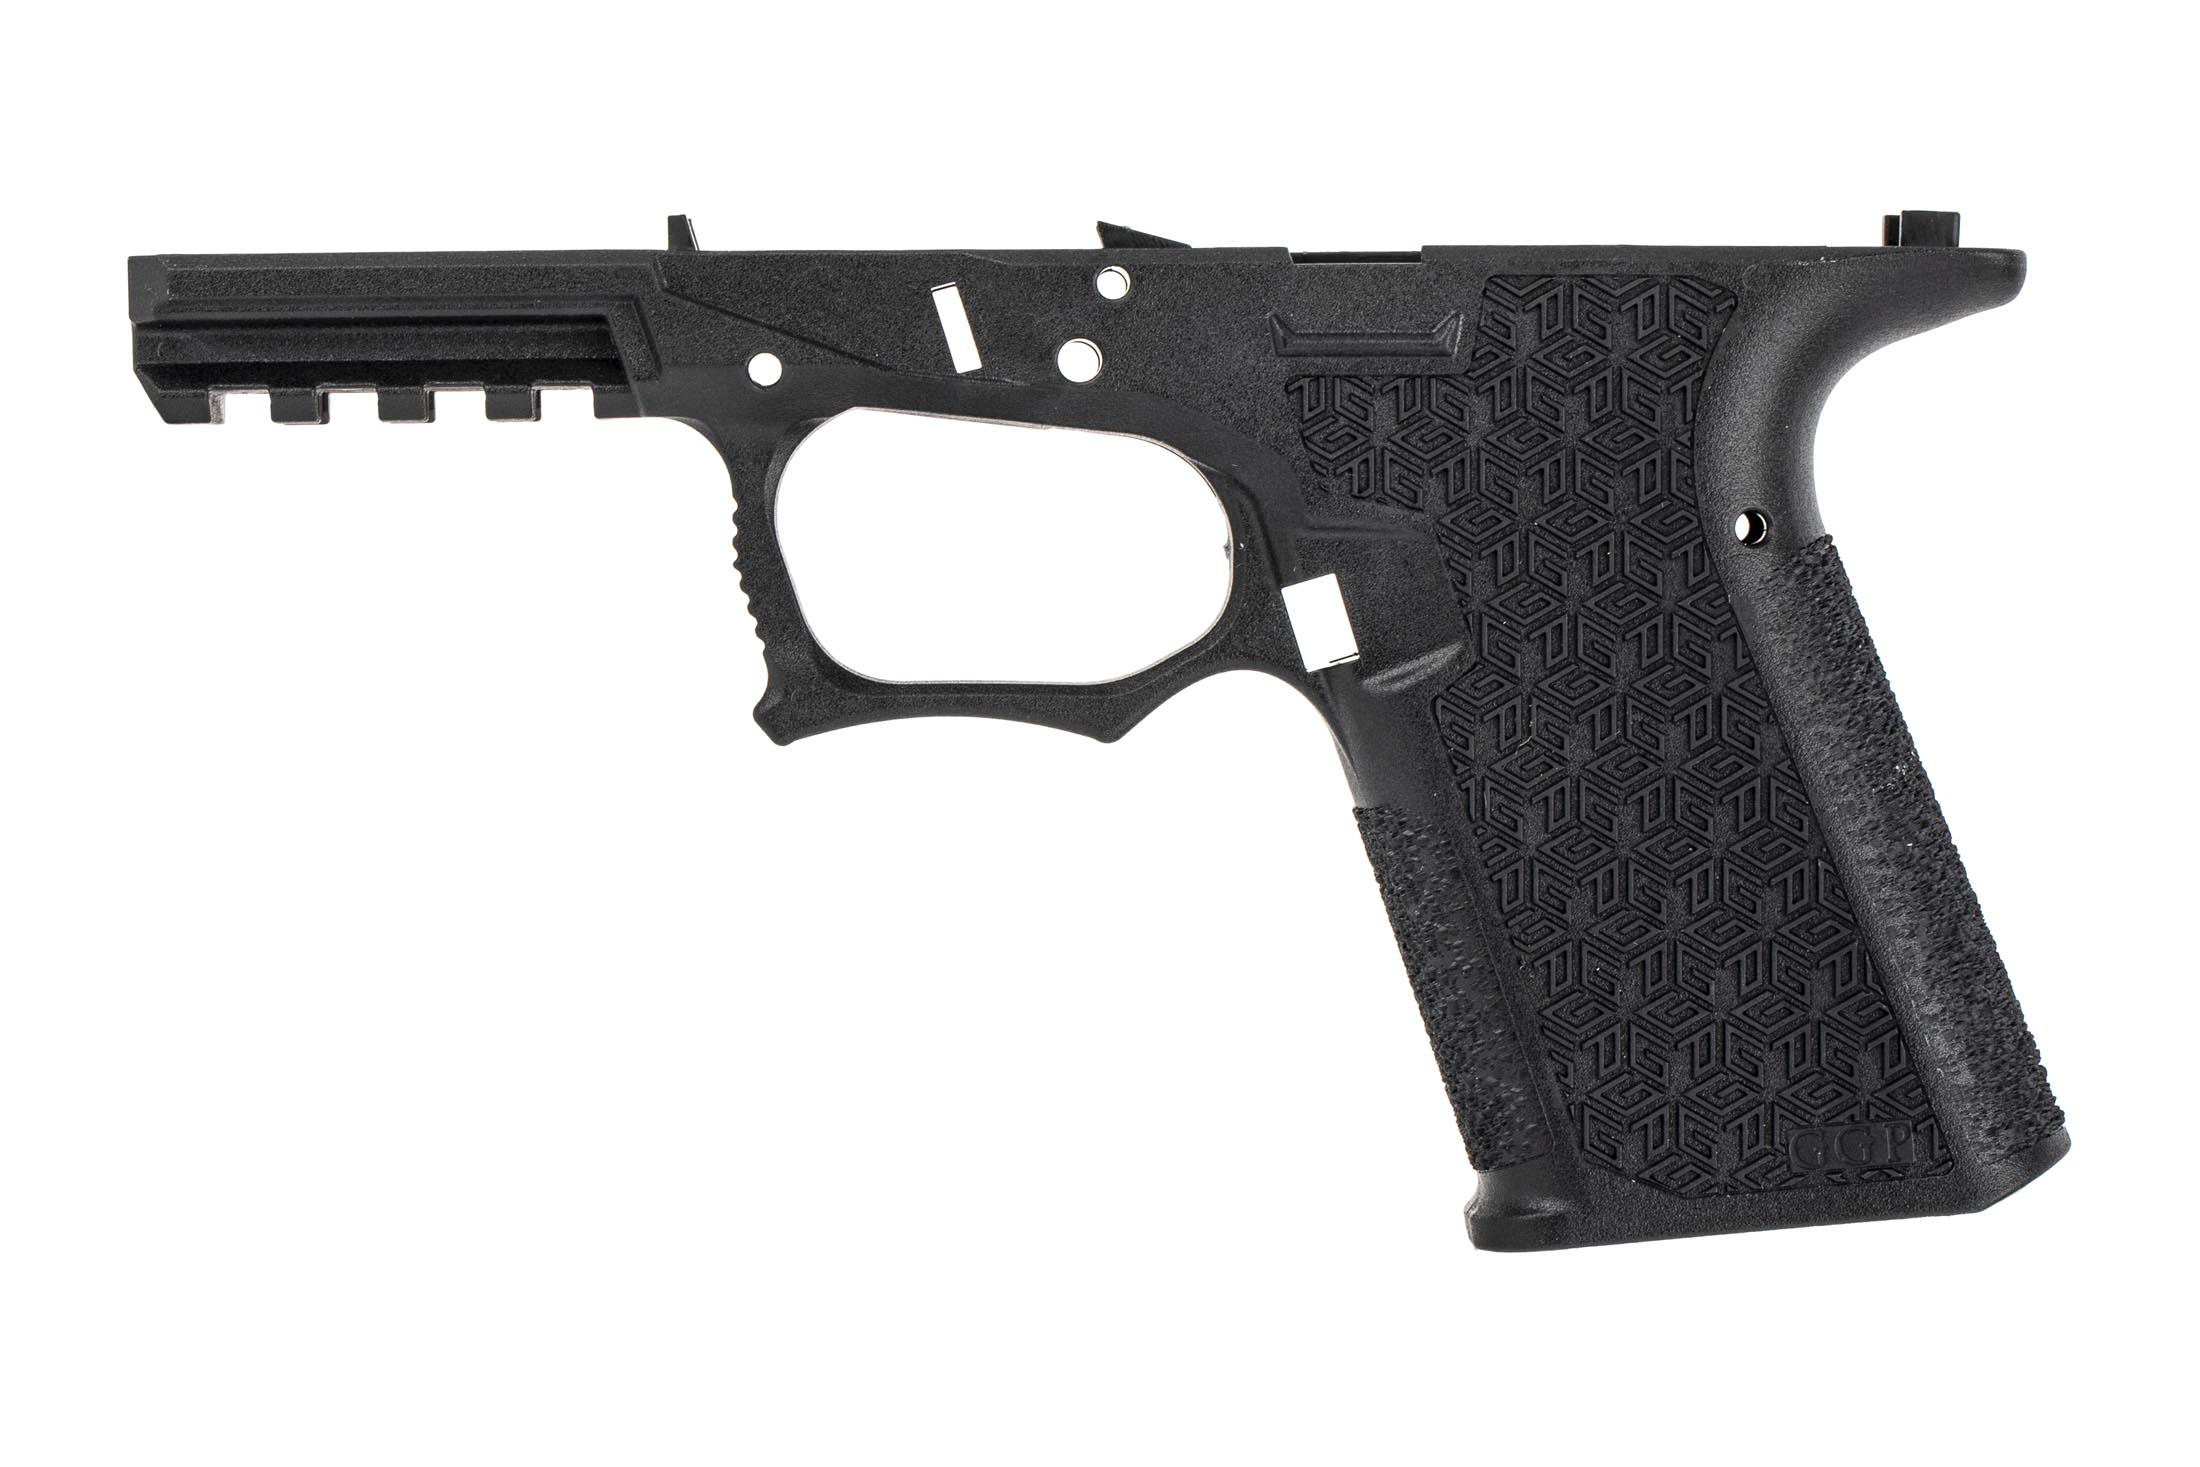 GGP reinforced polymer stripped black combat pistol frame is compatible with 15-round G19 magazines